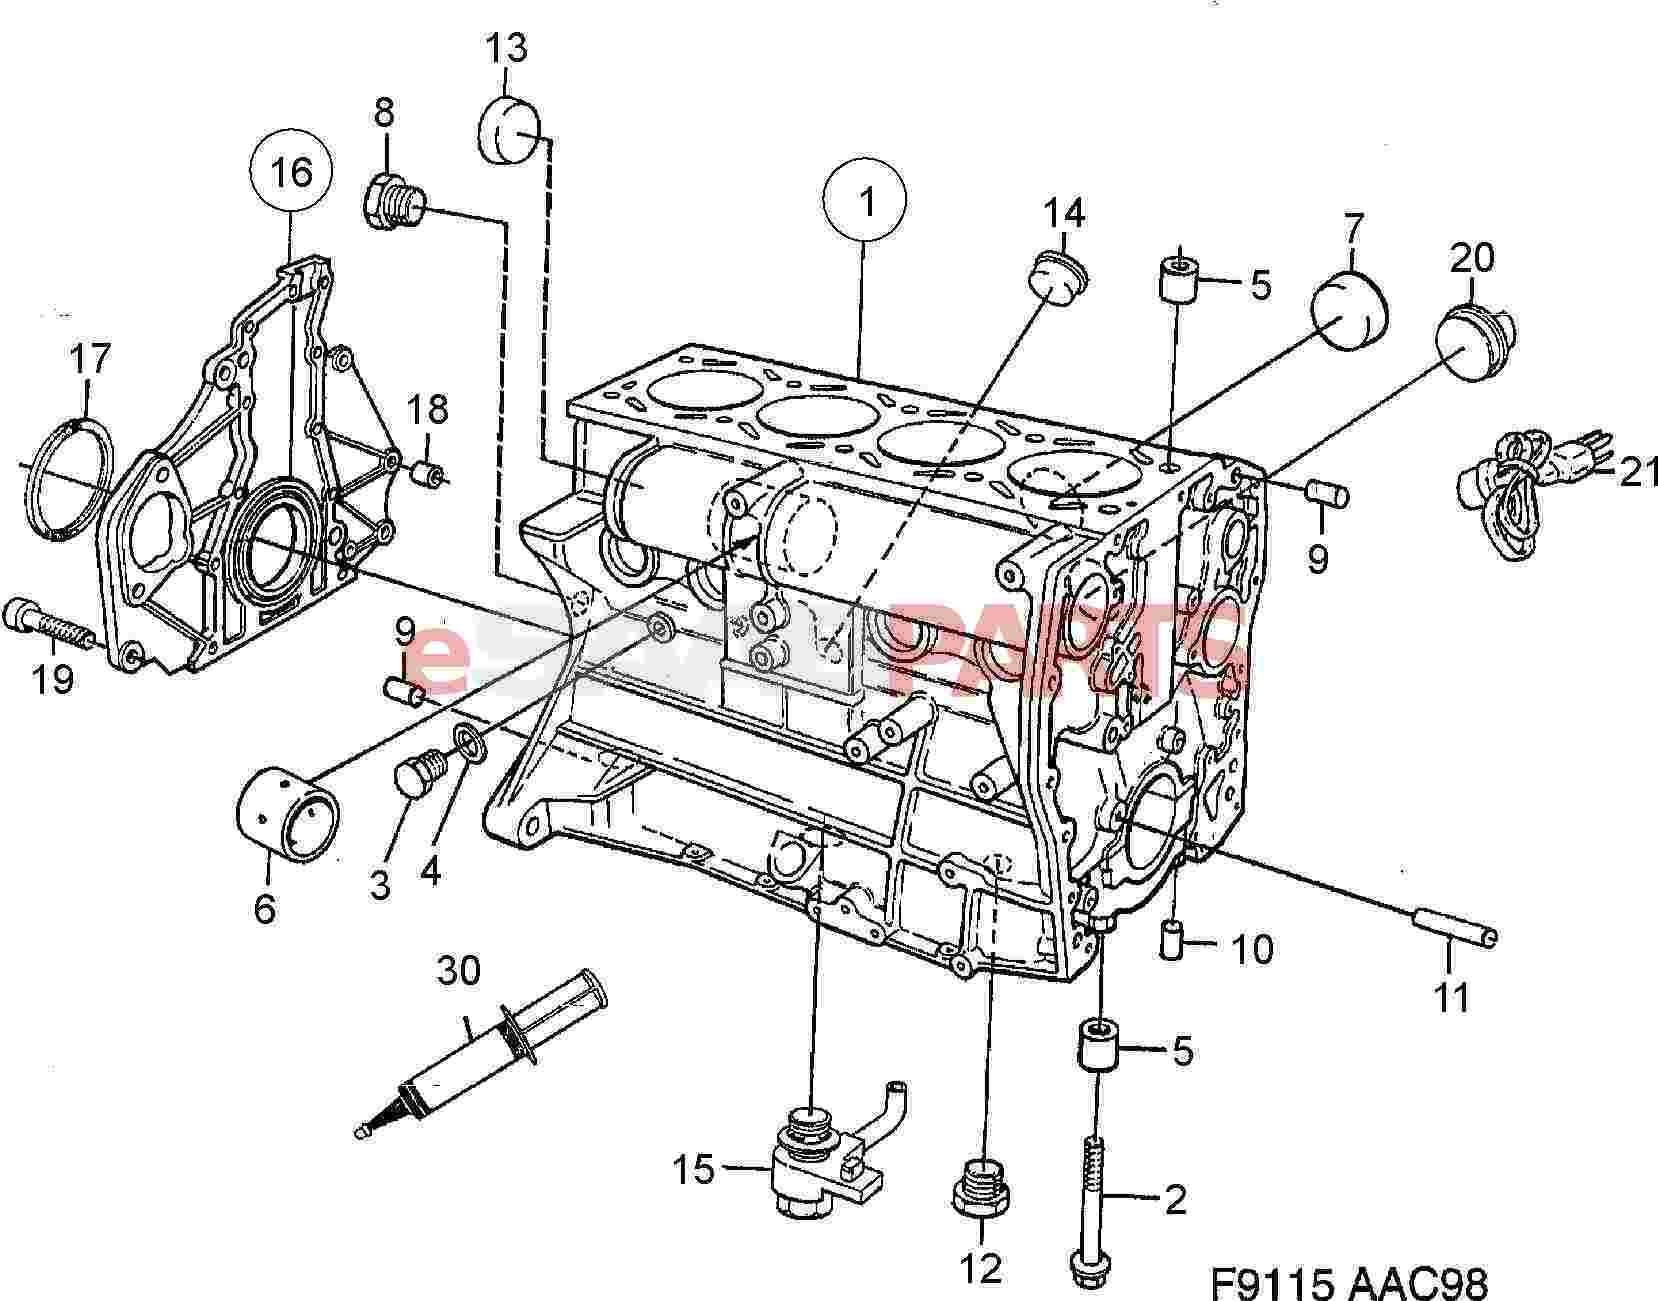 saab 9 3 parts diagram  u2022 wiring diagram for free